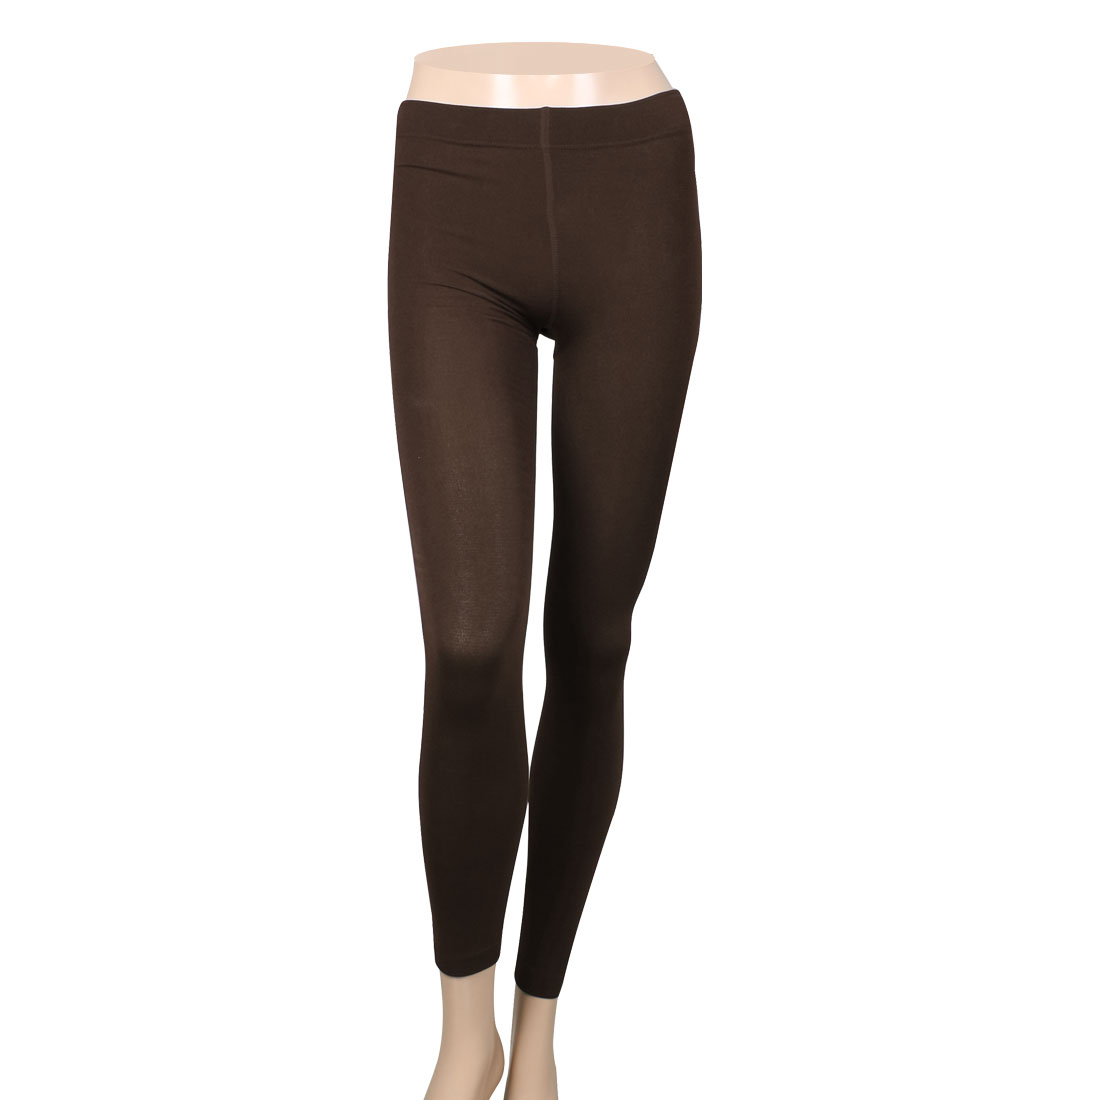 Women Winter Warm Sexy Footless Stretch Skinny Pants Tights Leggings XS